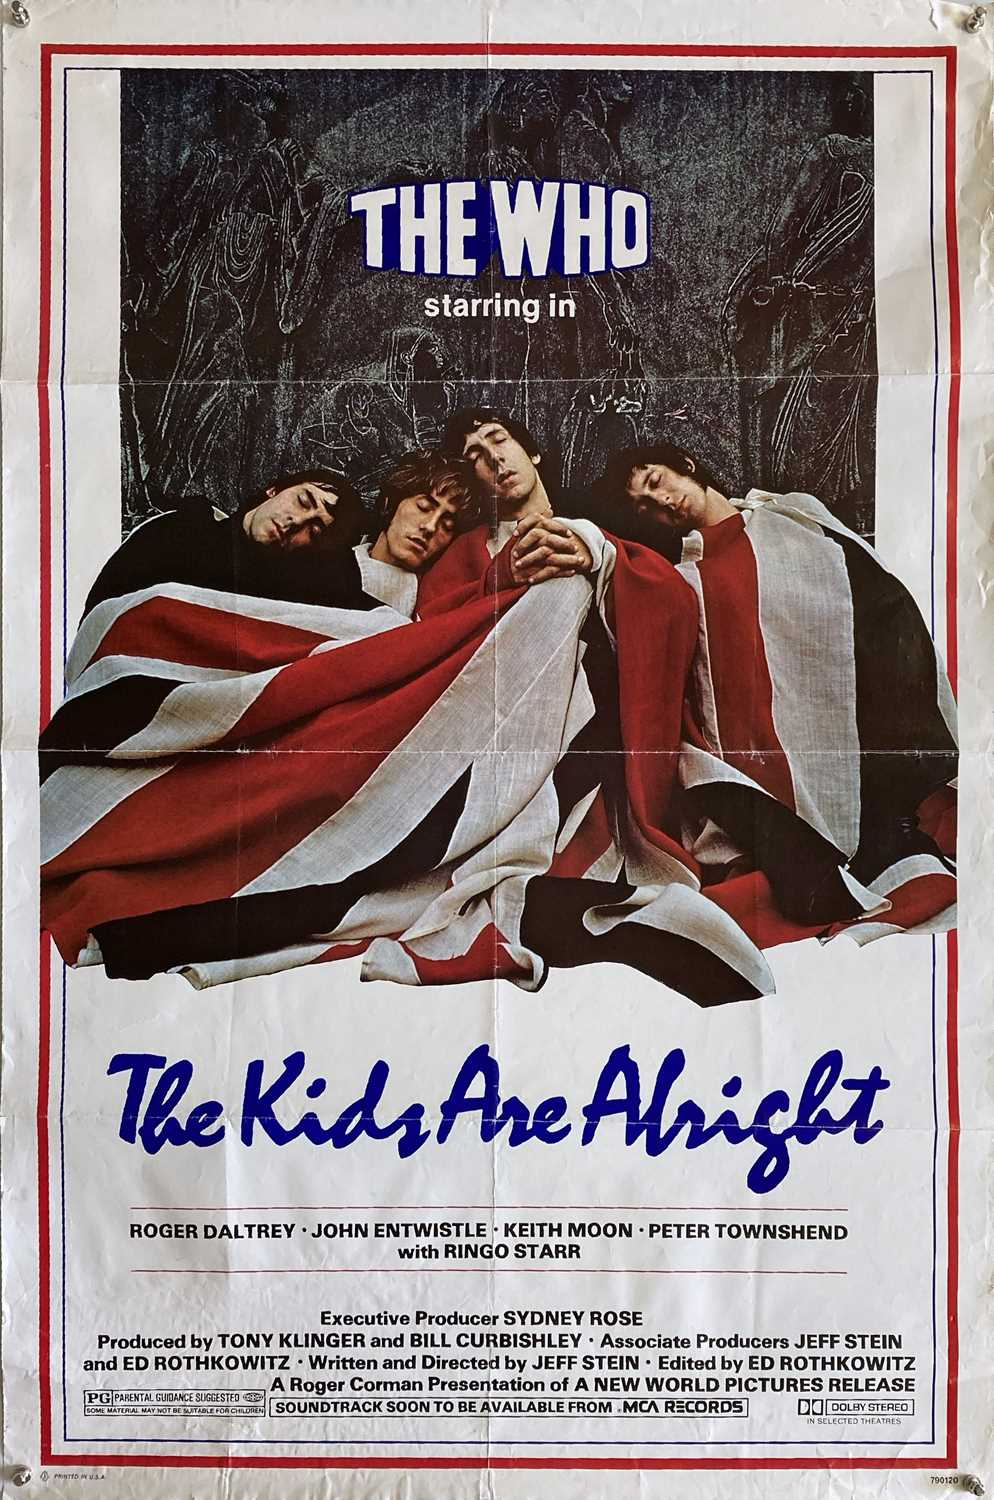 THE WHO / SMALL FACES POSTERS INC THE KIDS ARE ALL RIGHT US ONE SHEET.